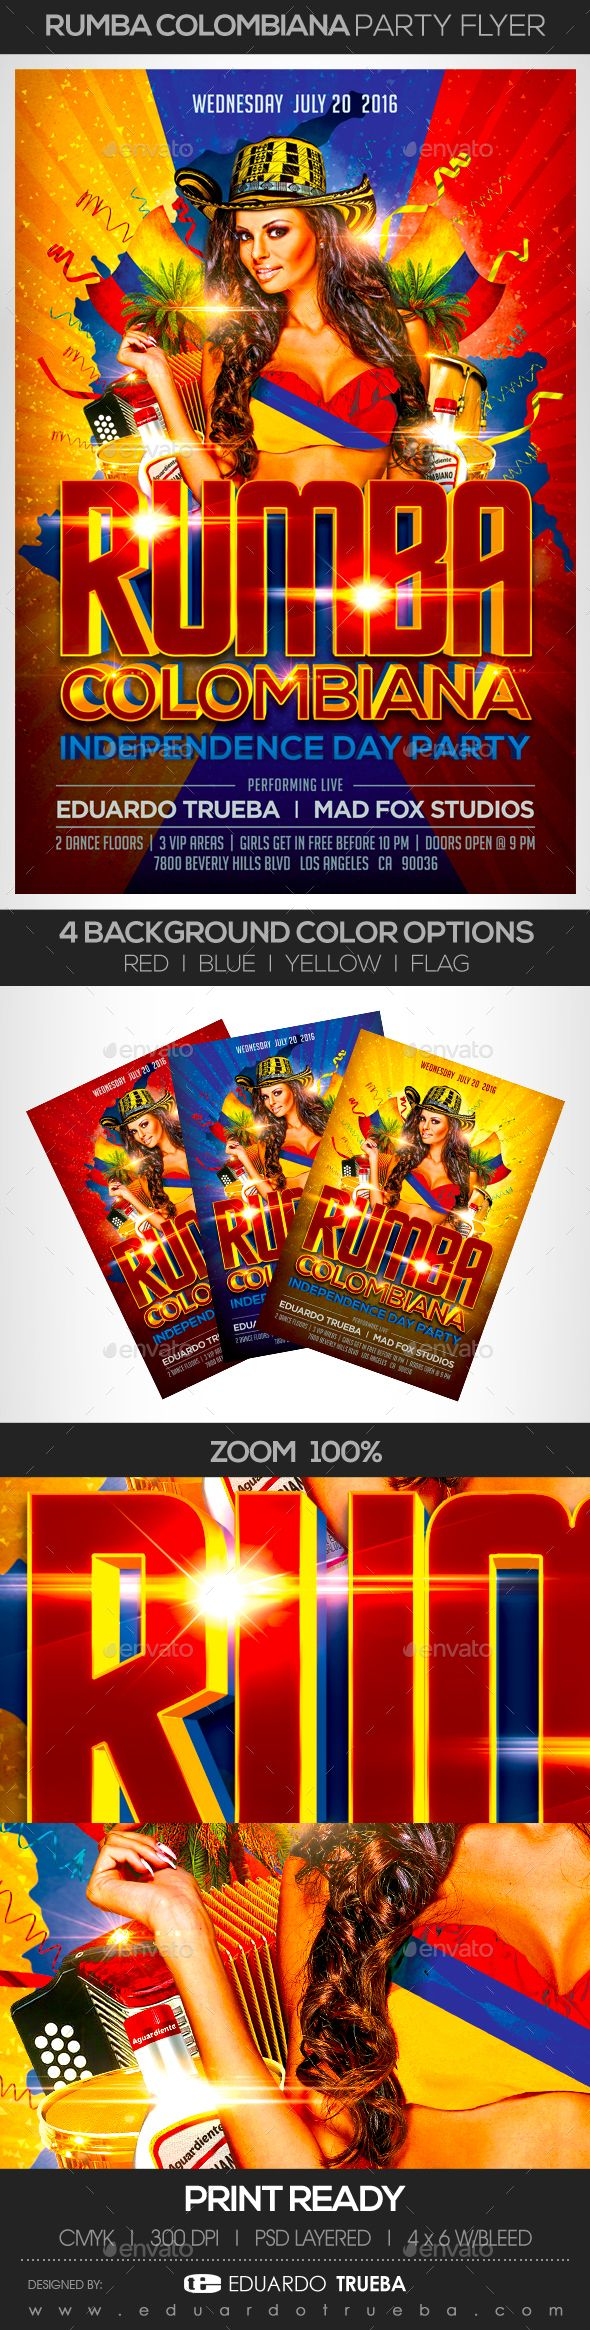 Rumba Colombiana Independence Day Party Flyer — Photoshop PSD #party flyer #colombian independence • Download ➝ https://graphicriver.net/item/rumba-colombiana-independence-day-party-flyer/16993422?ref=pxcr